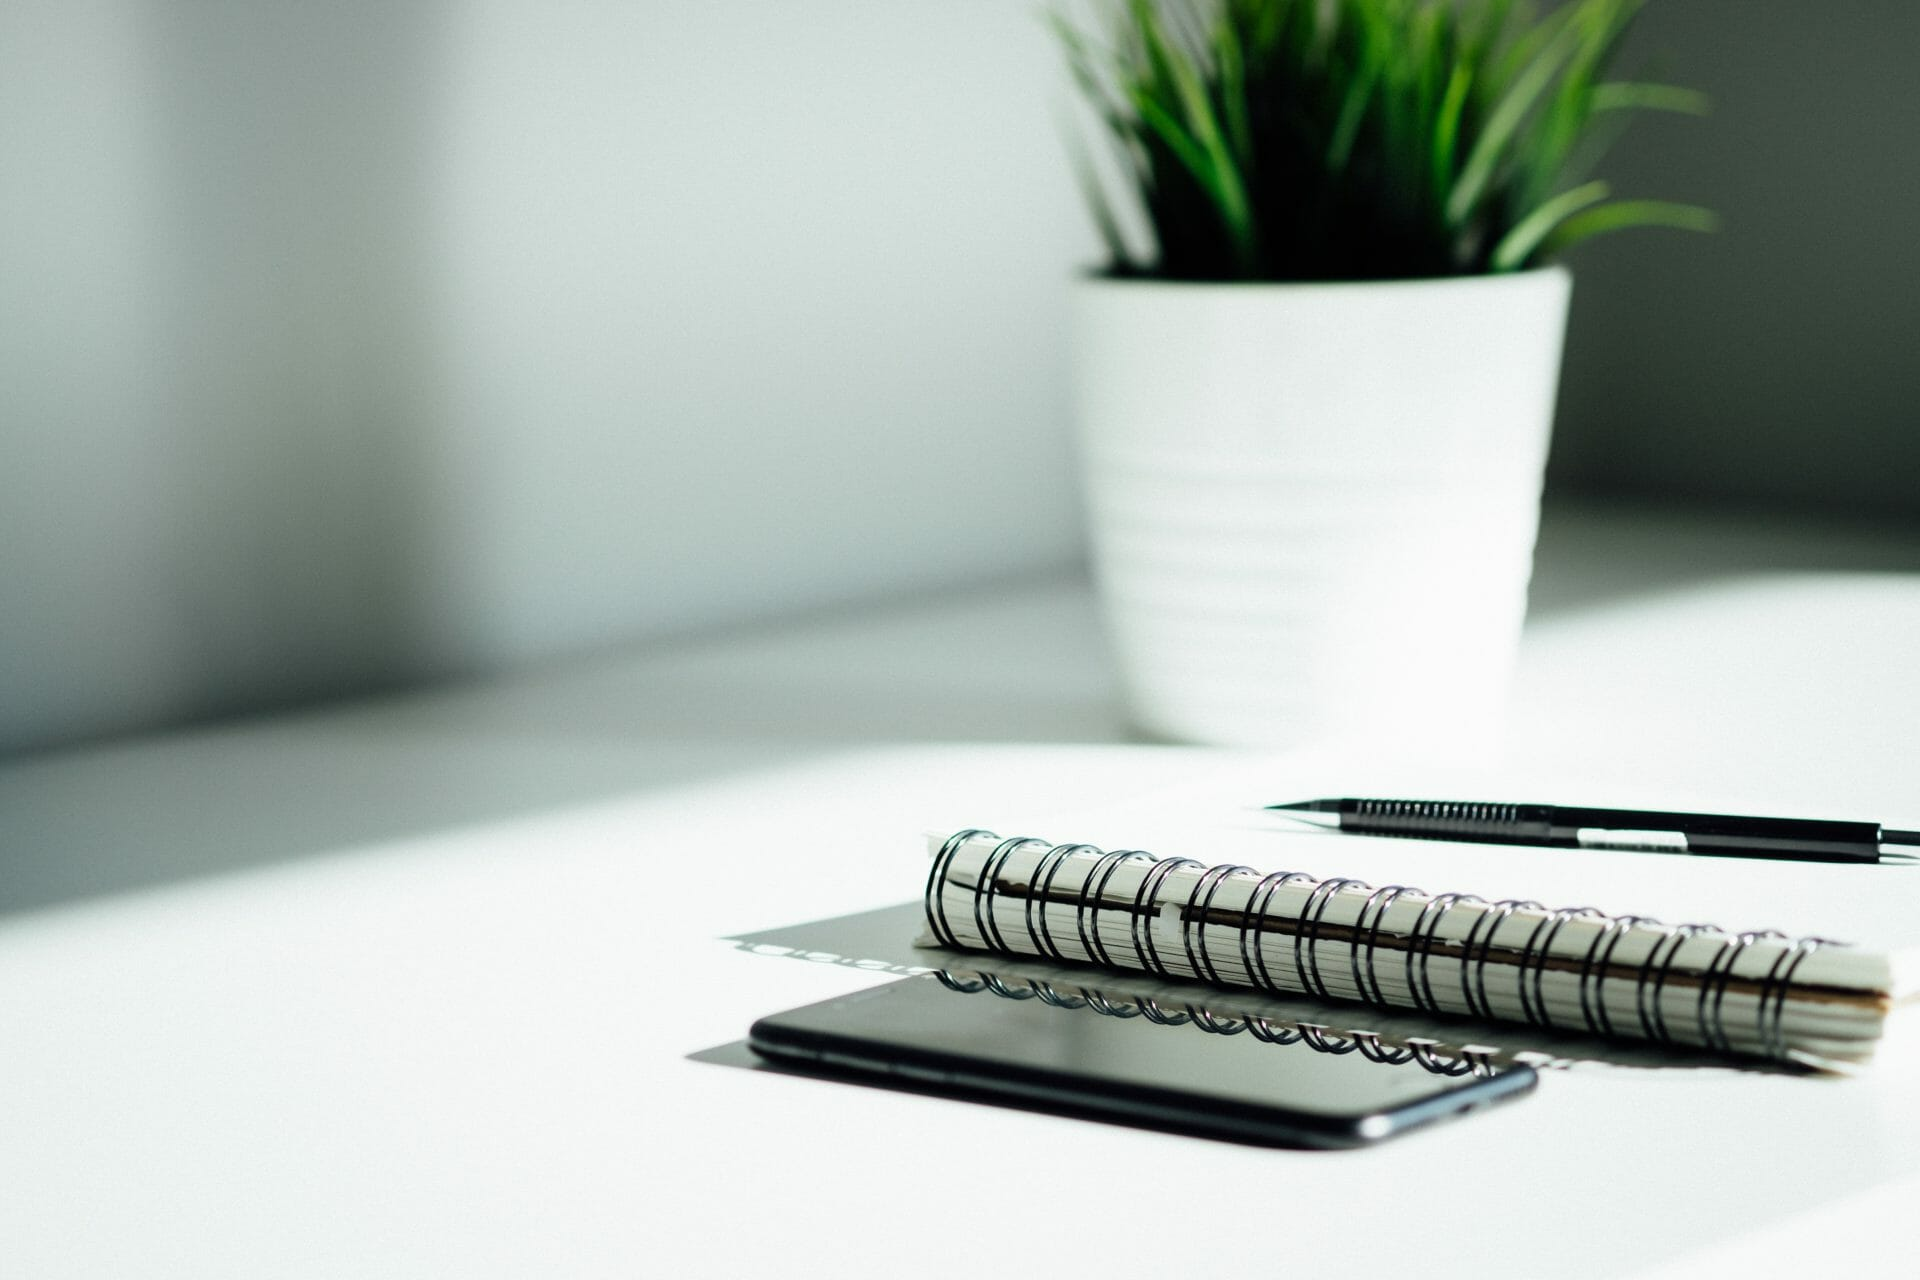 Picture of phone, notebook and plant on a desk